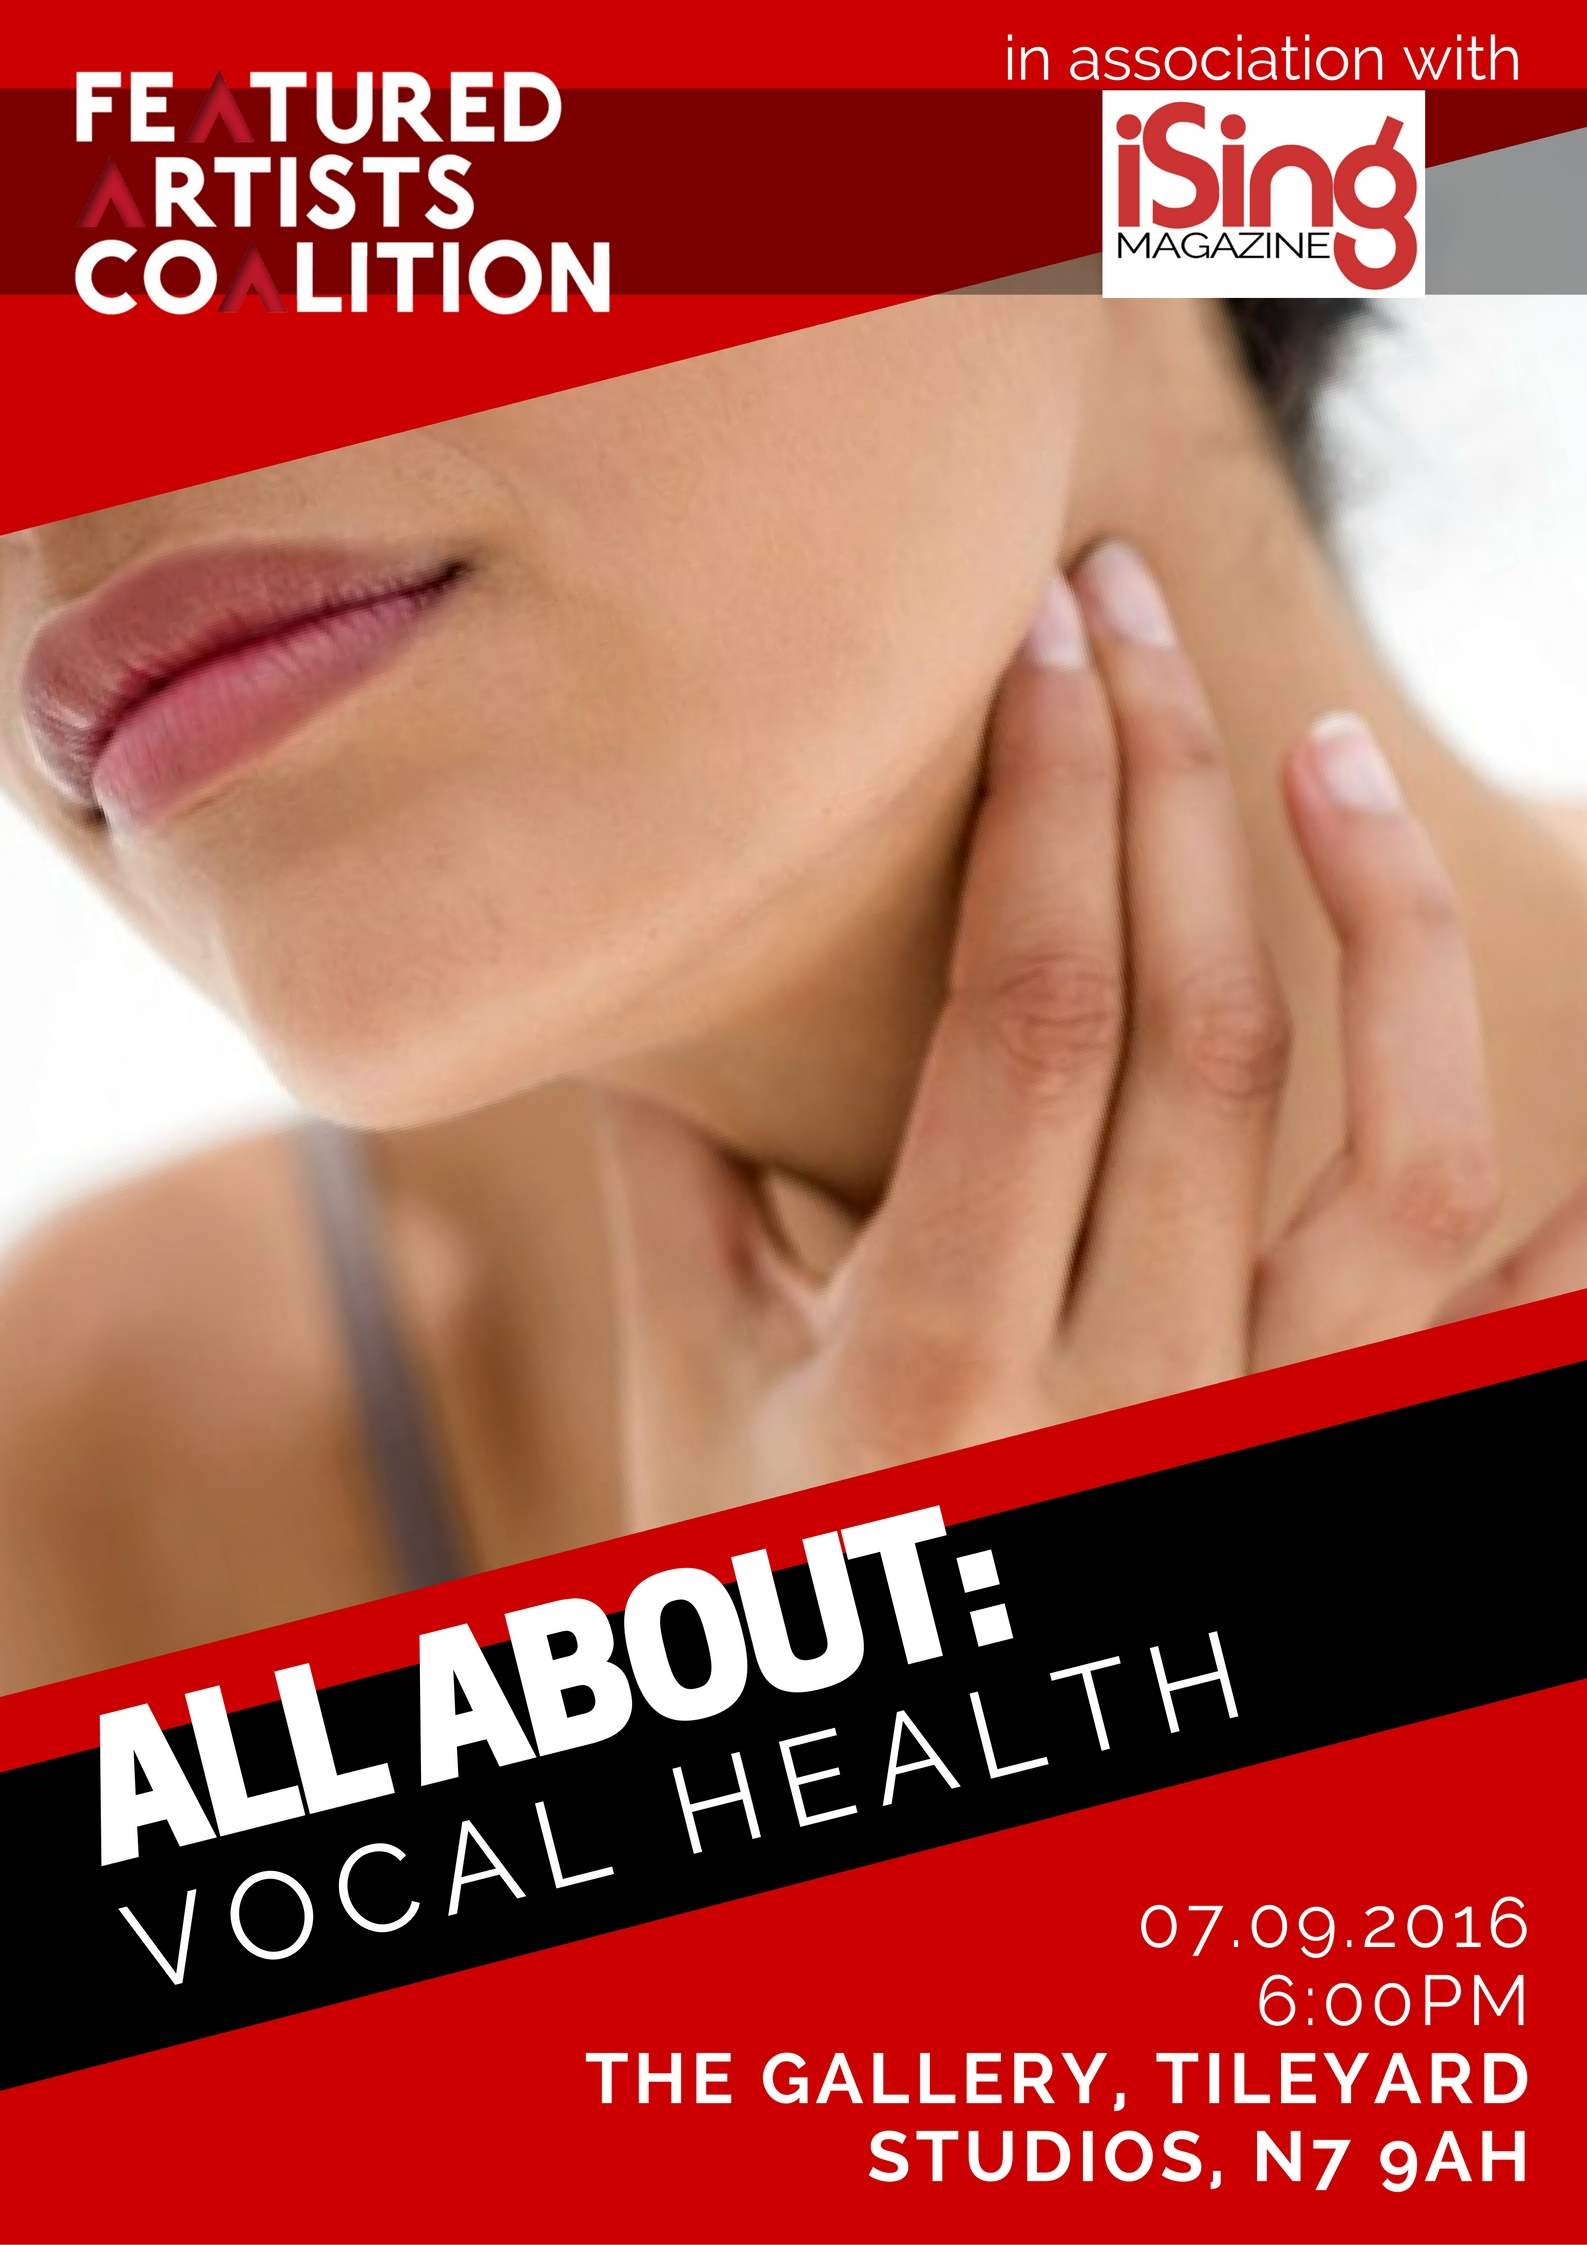 AA Vocal Health Flyer